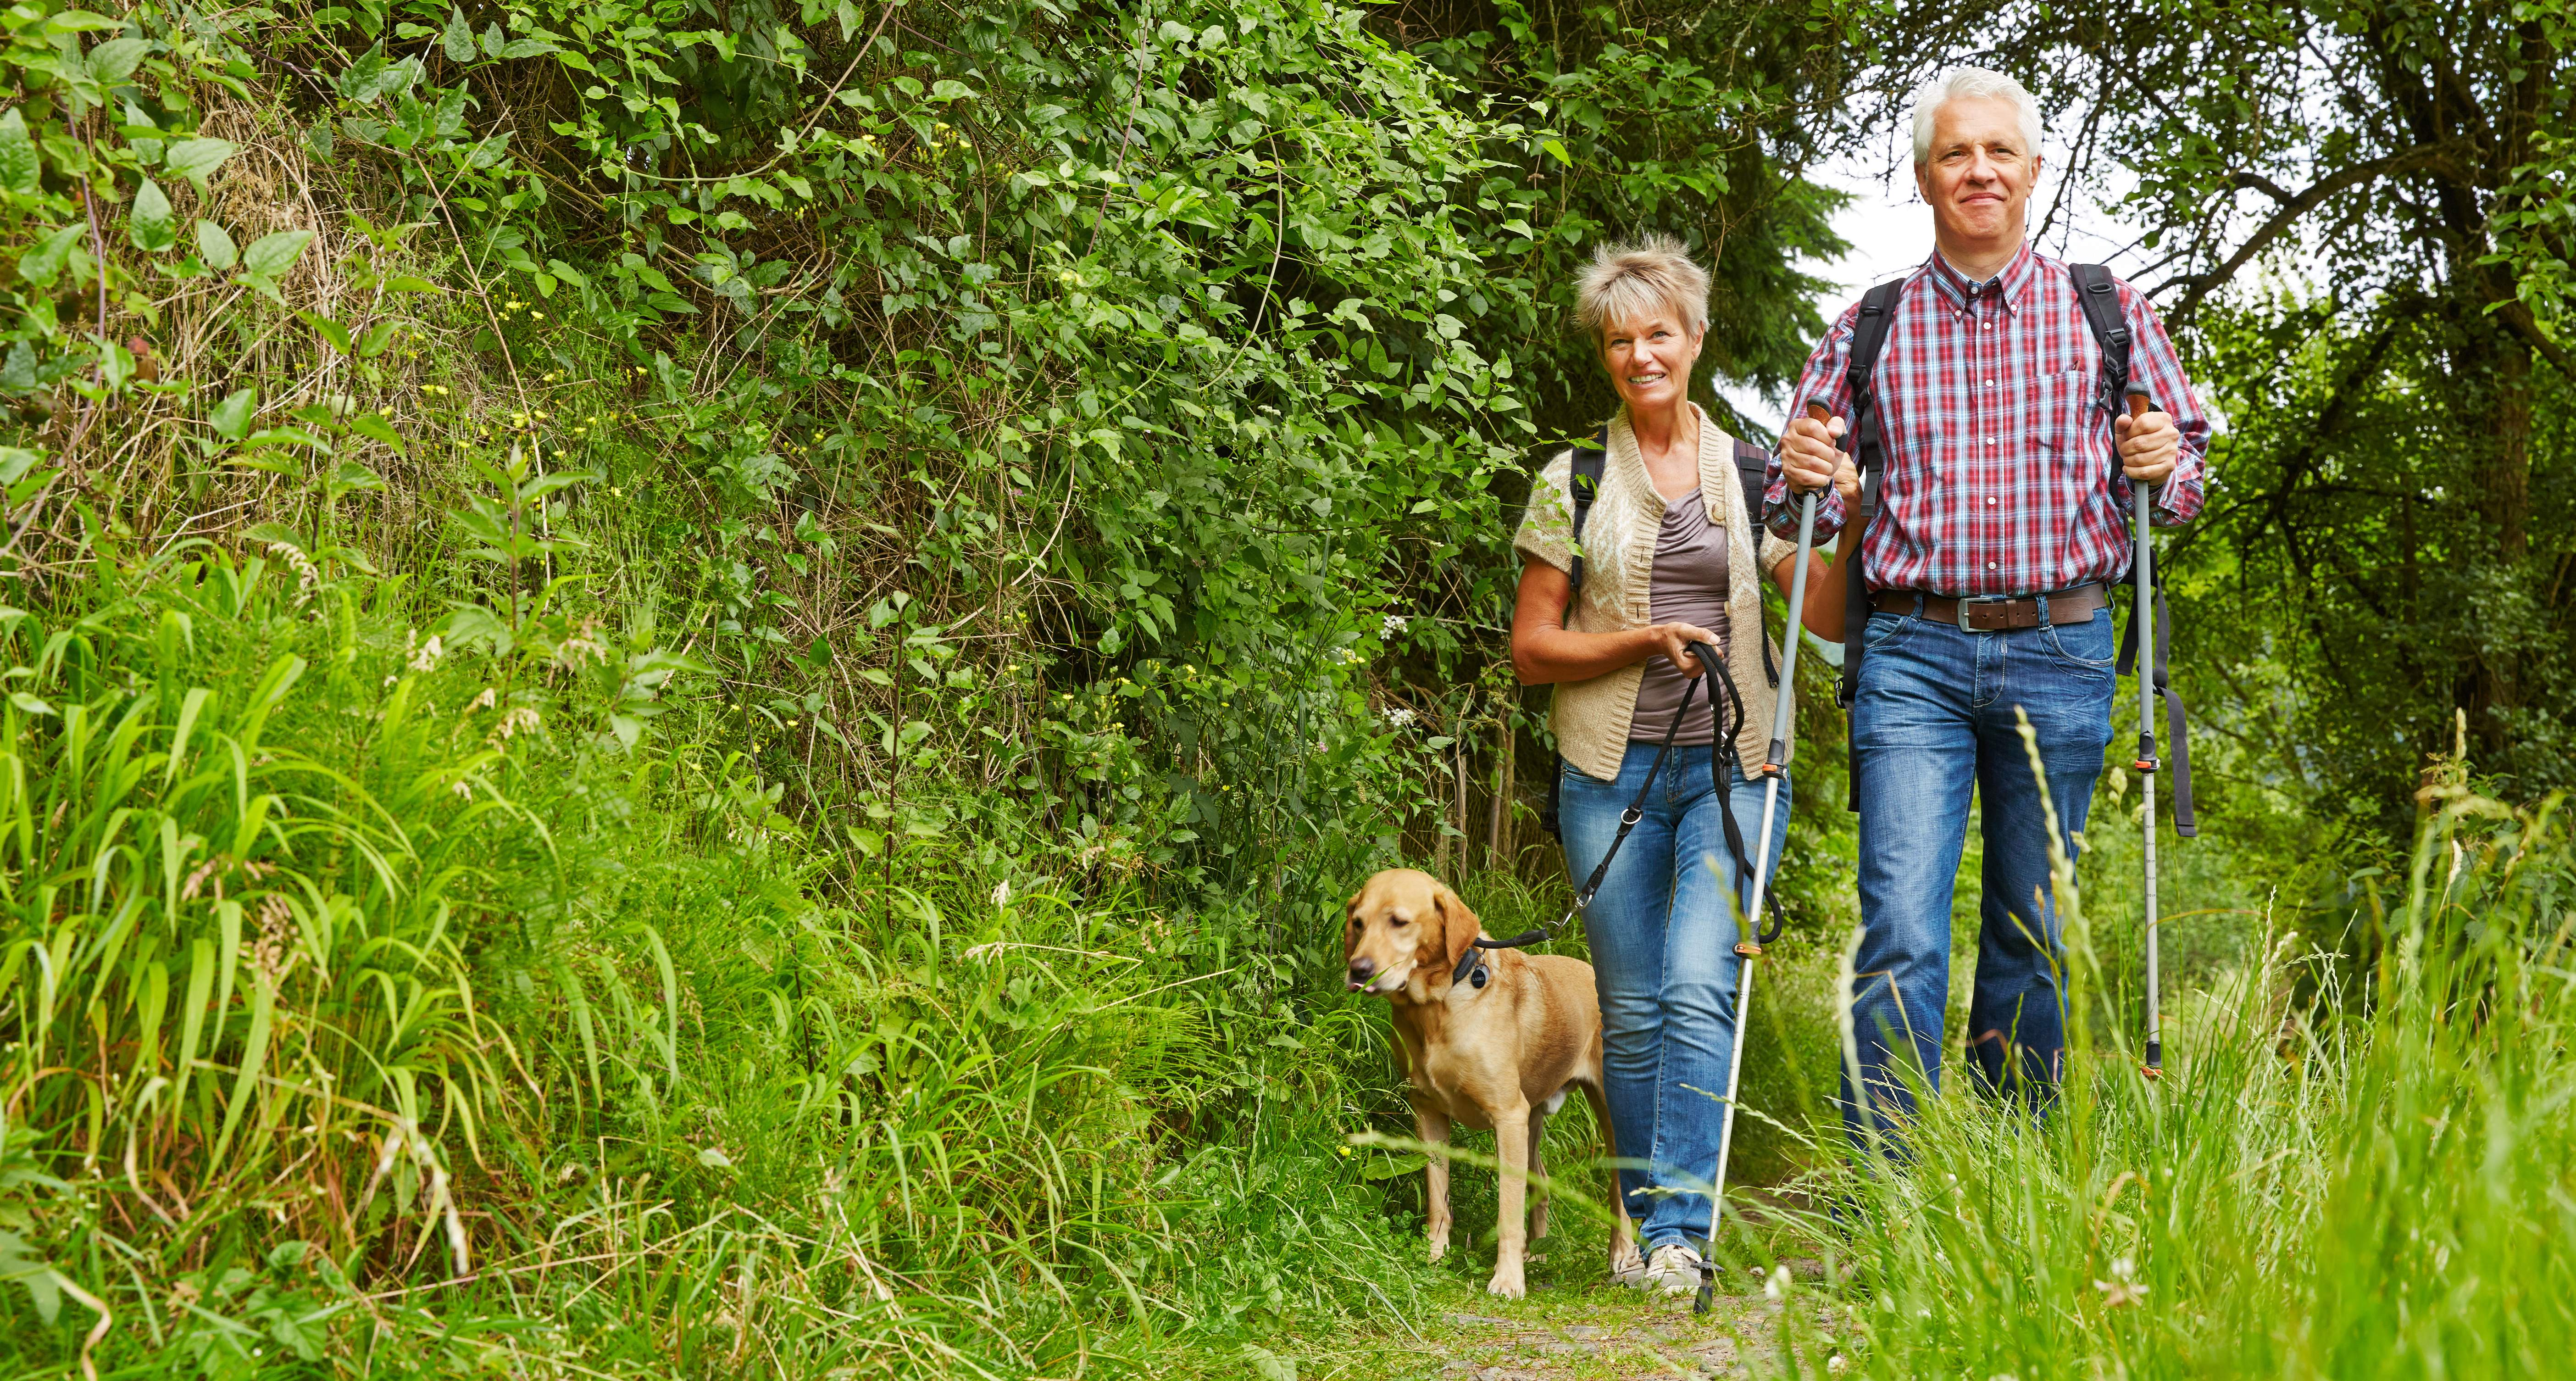 Happy senior couple walking with dog on a hiking trail in nature